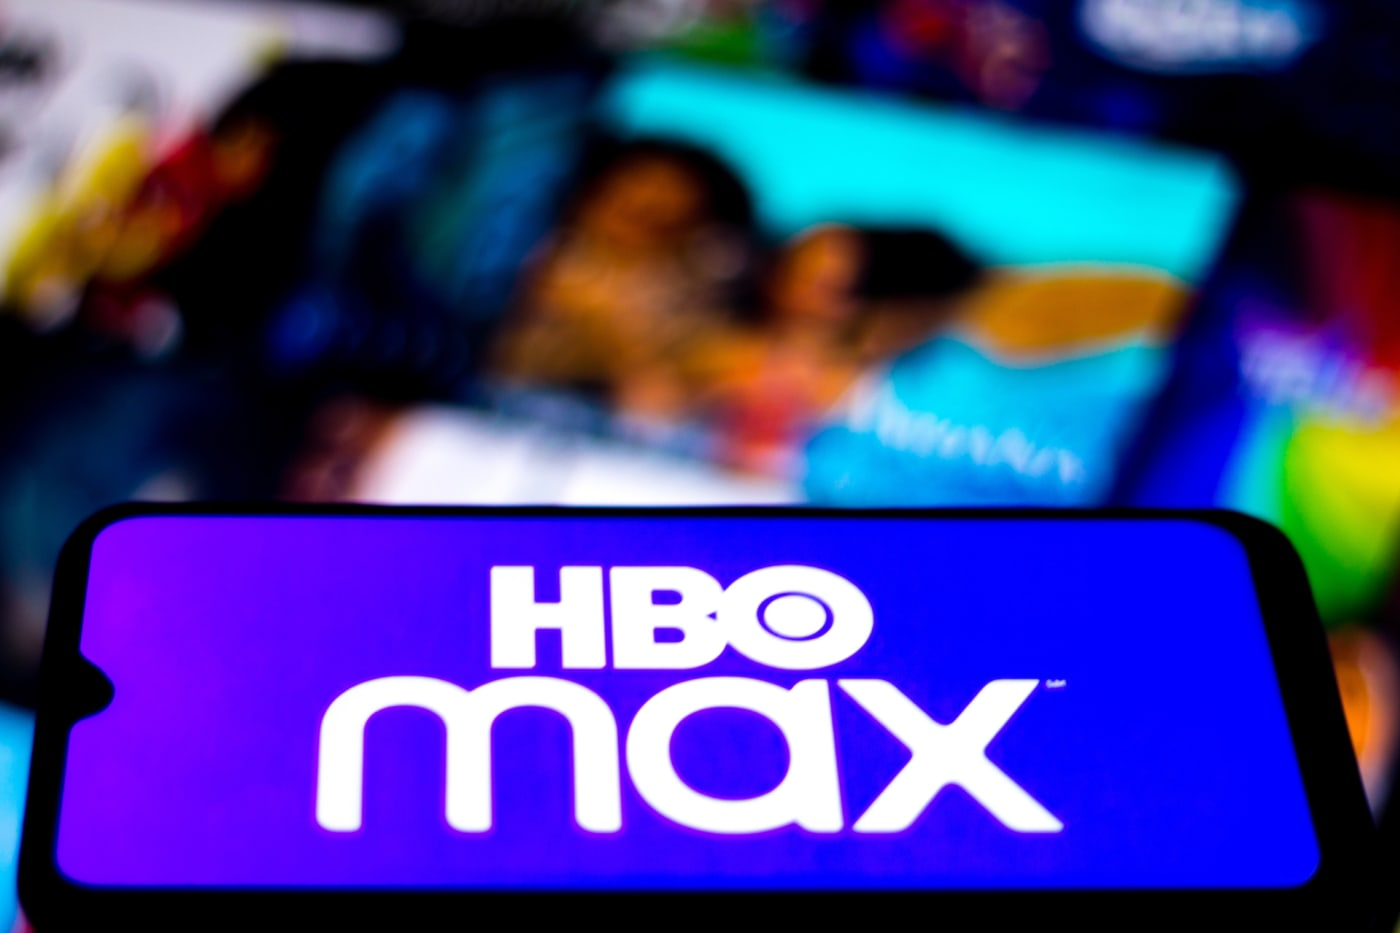 HBO Max logo seen displayed on a smartphone